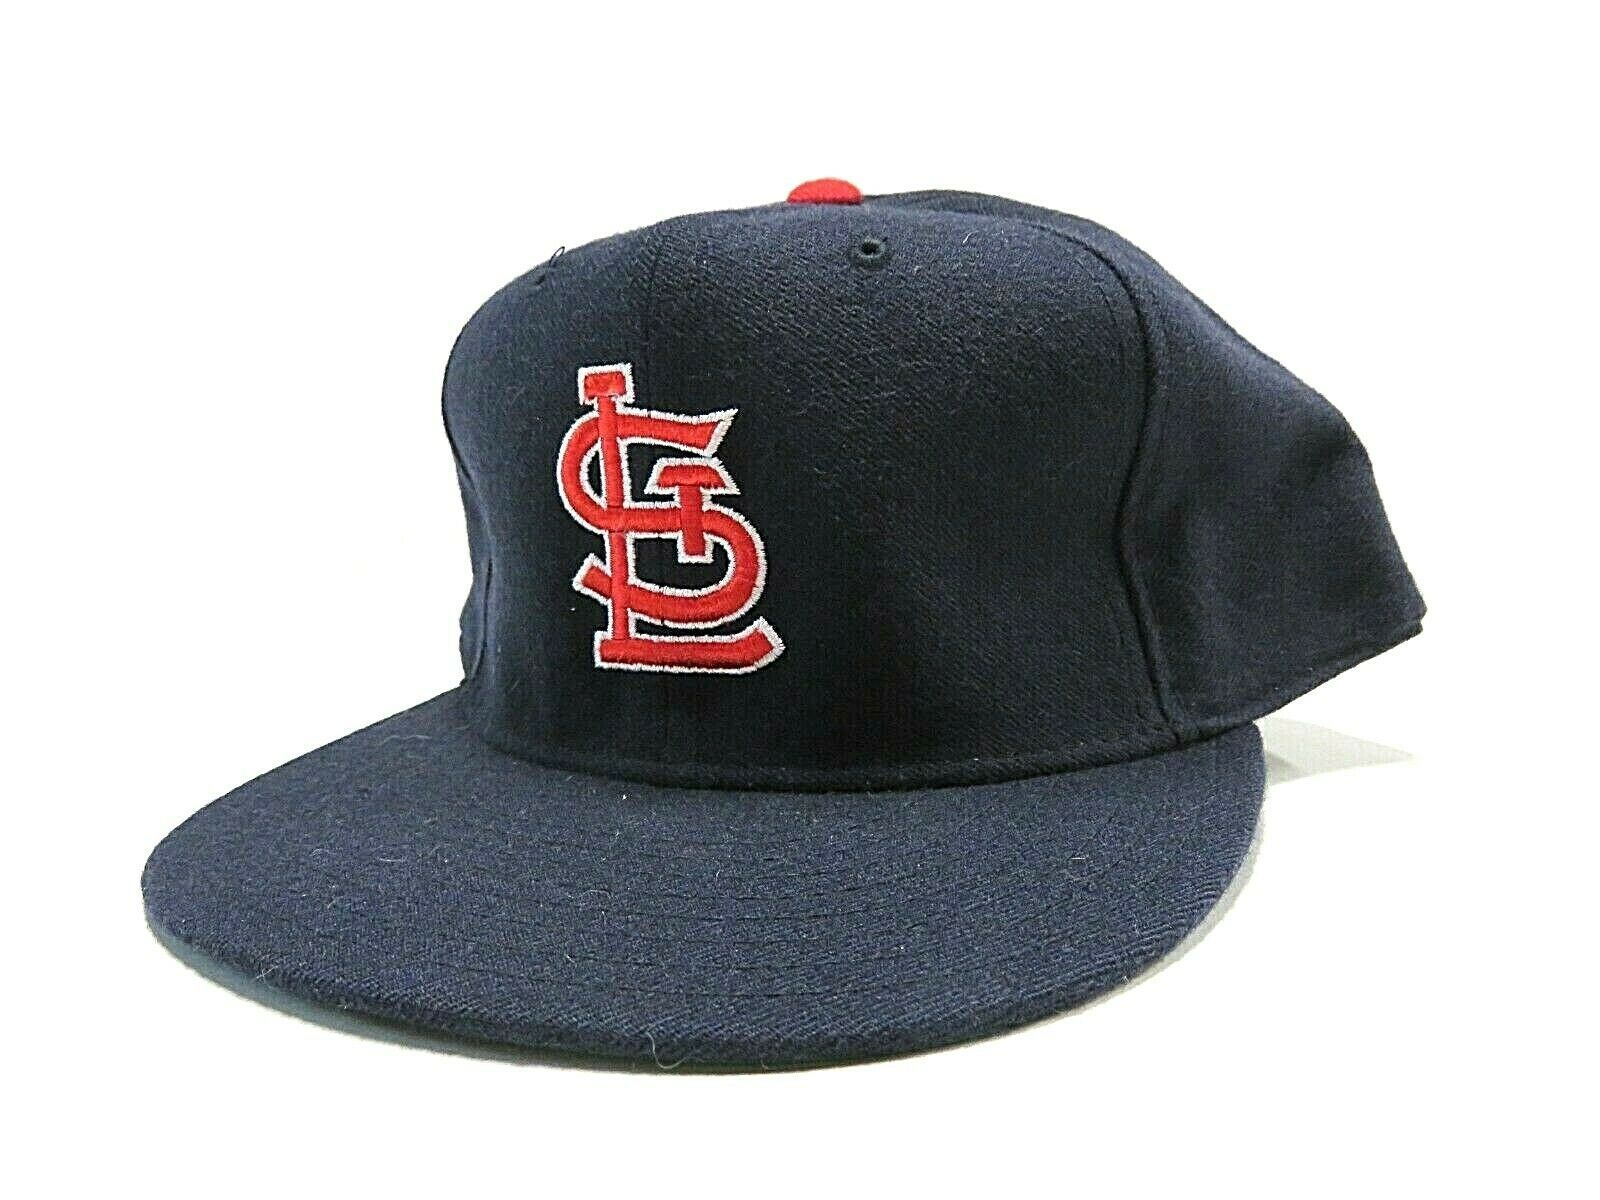 VTG New Era St. Louis Cardinals MLB Baseball Fitted Hat Size 7 3/4 Made in USA